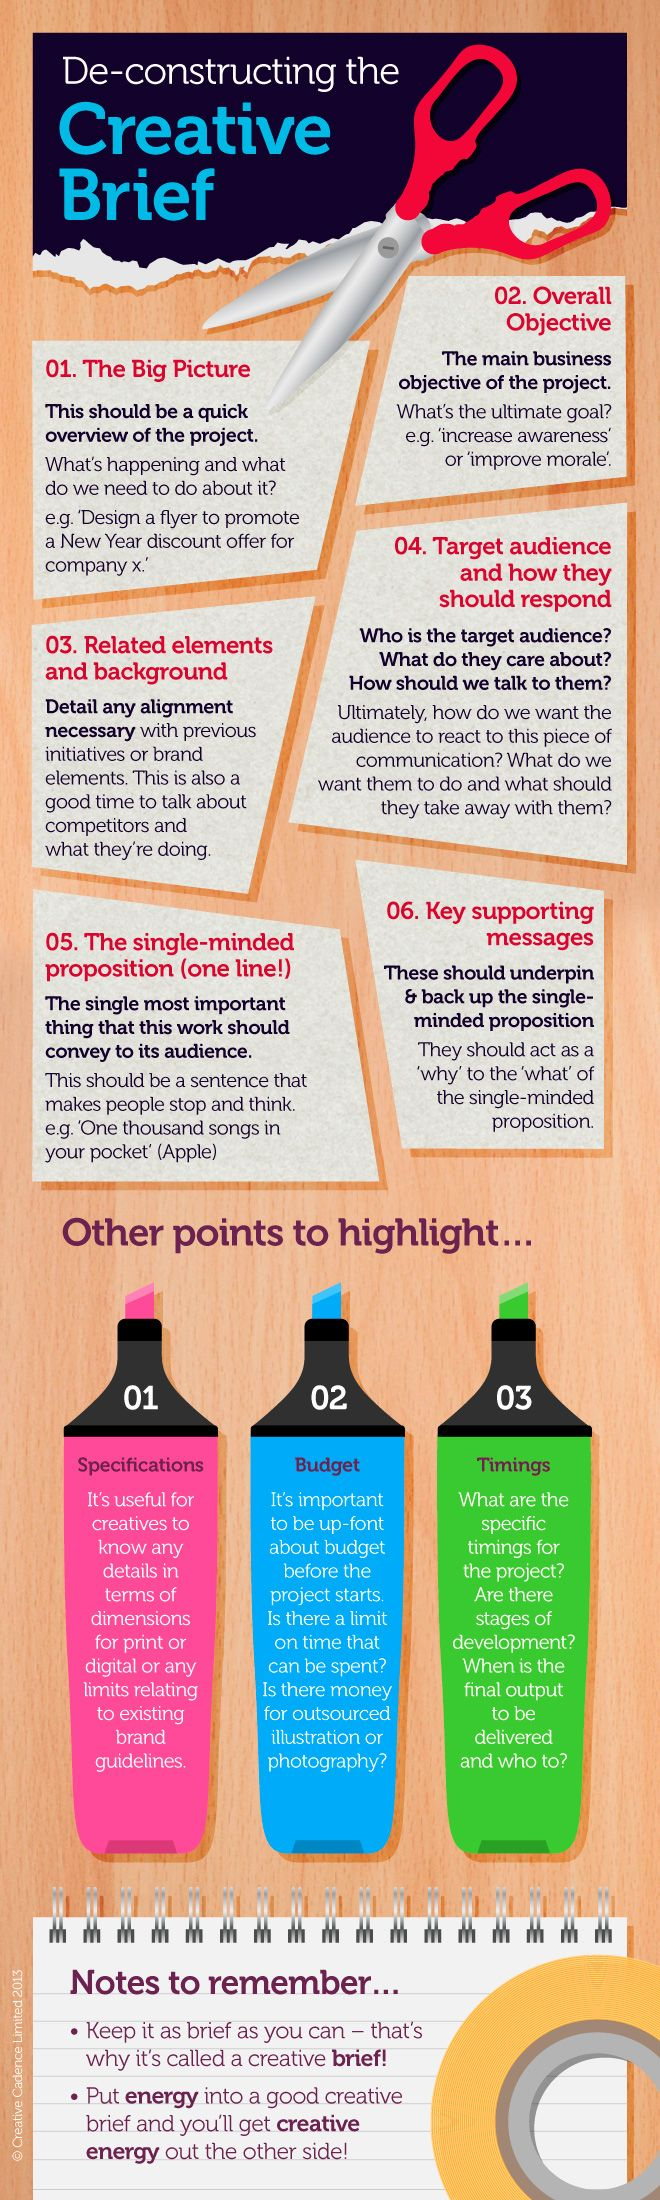 Infographic representation of a Creative Brief. Designed by Creative Cadence Limited. www.creative-cadence.co.uk